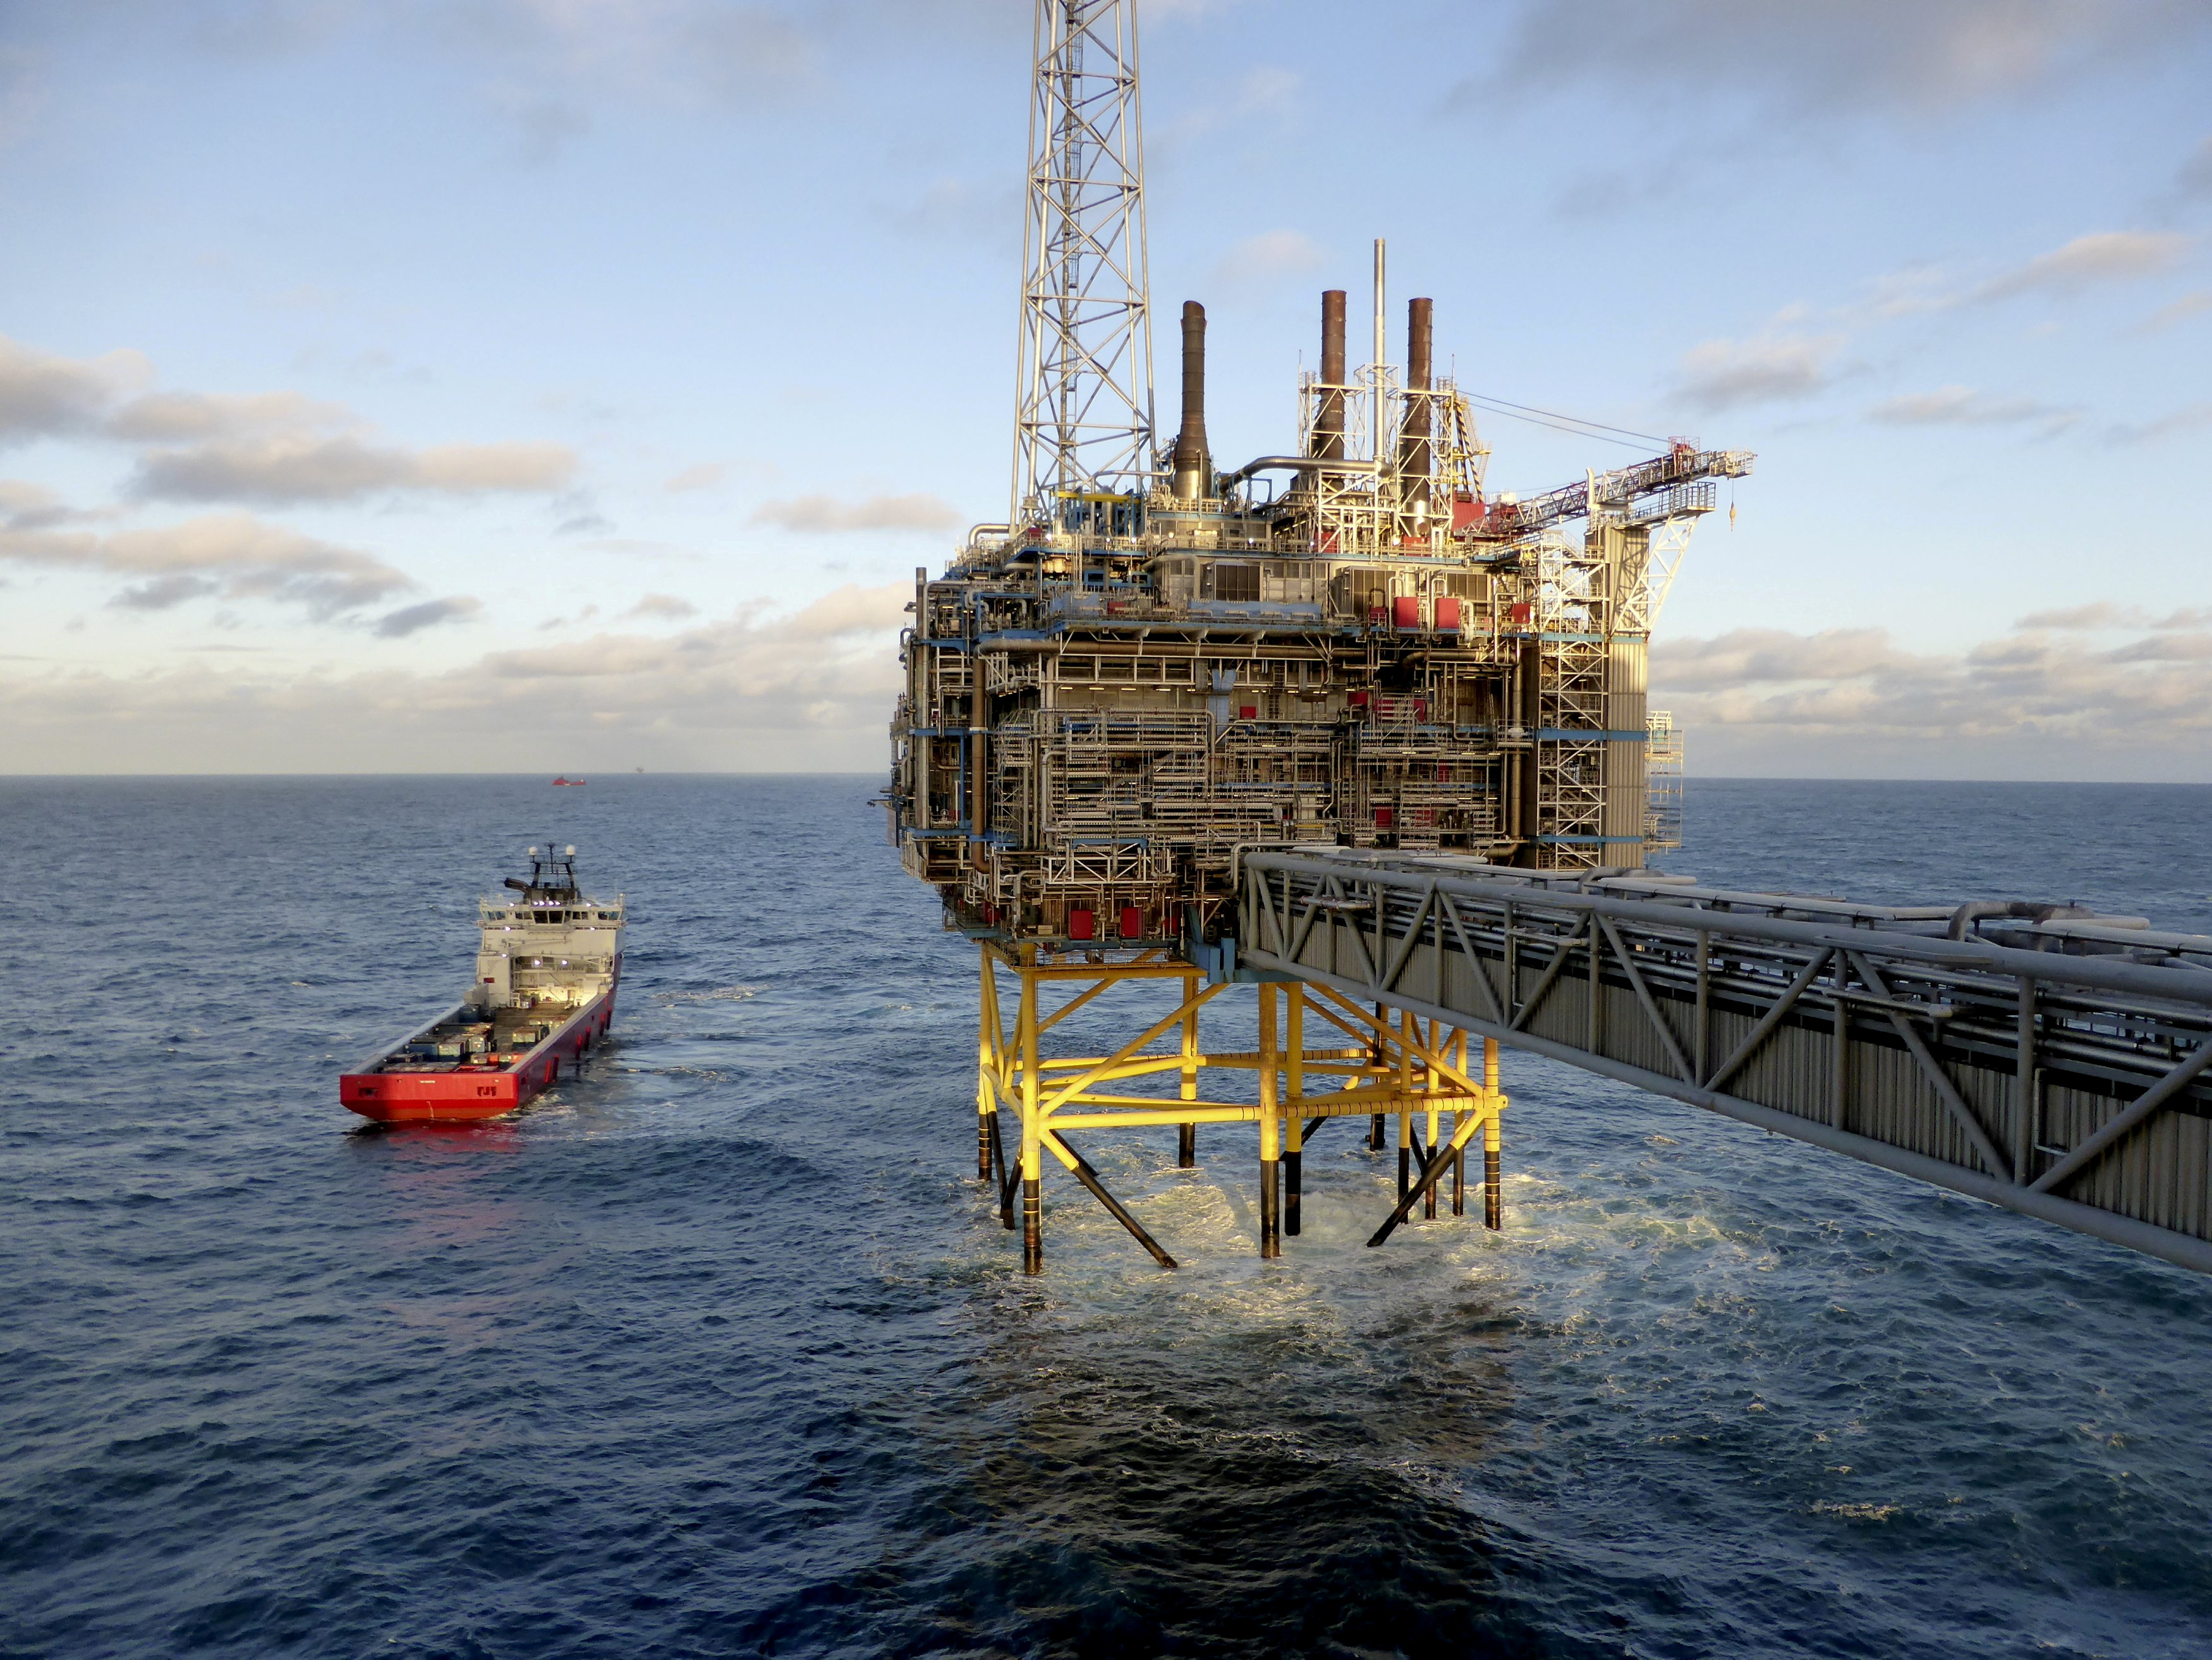 Oil and gas company Statoil gas processing and CO2 removal platform Sleipner T is pictured in the offshore near the Stavanger, Norway, February 11, 2016.  REUTERS/Nerijus Adomaitis